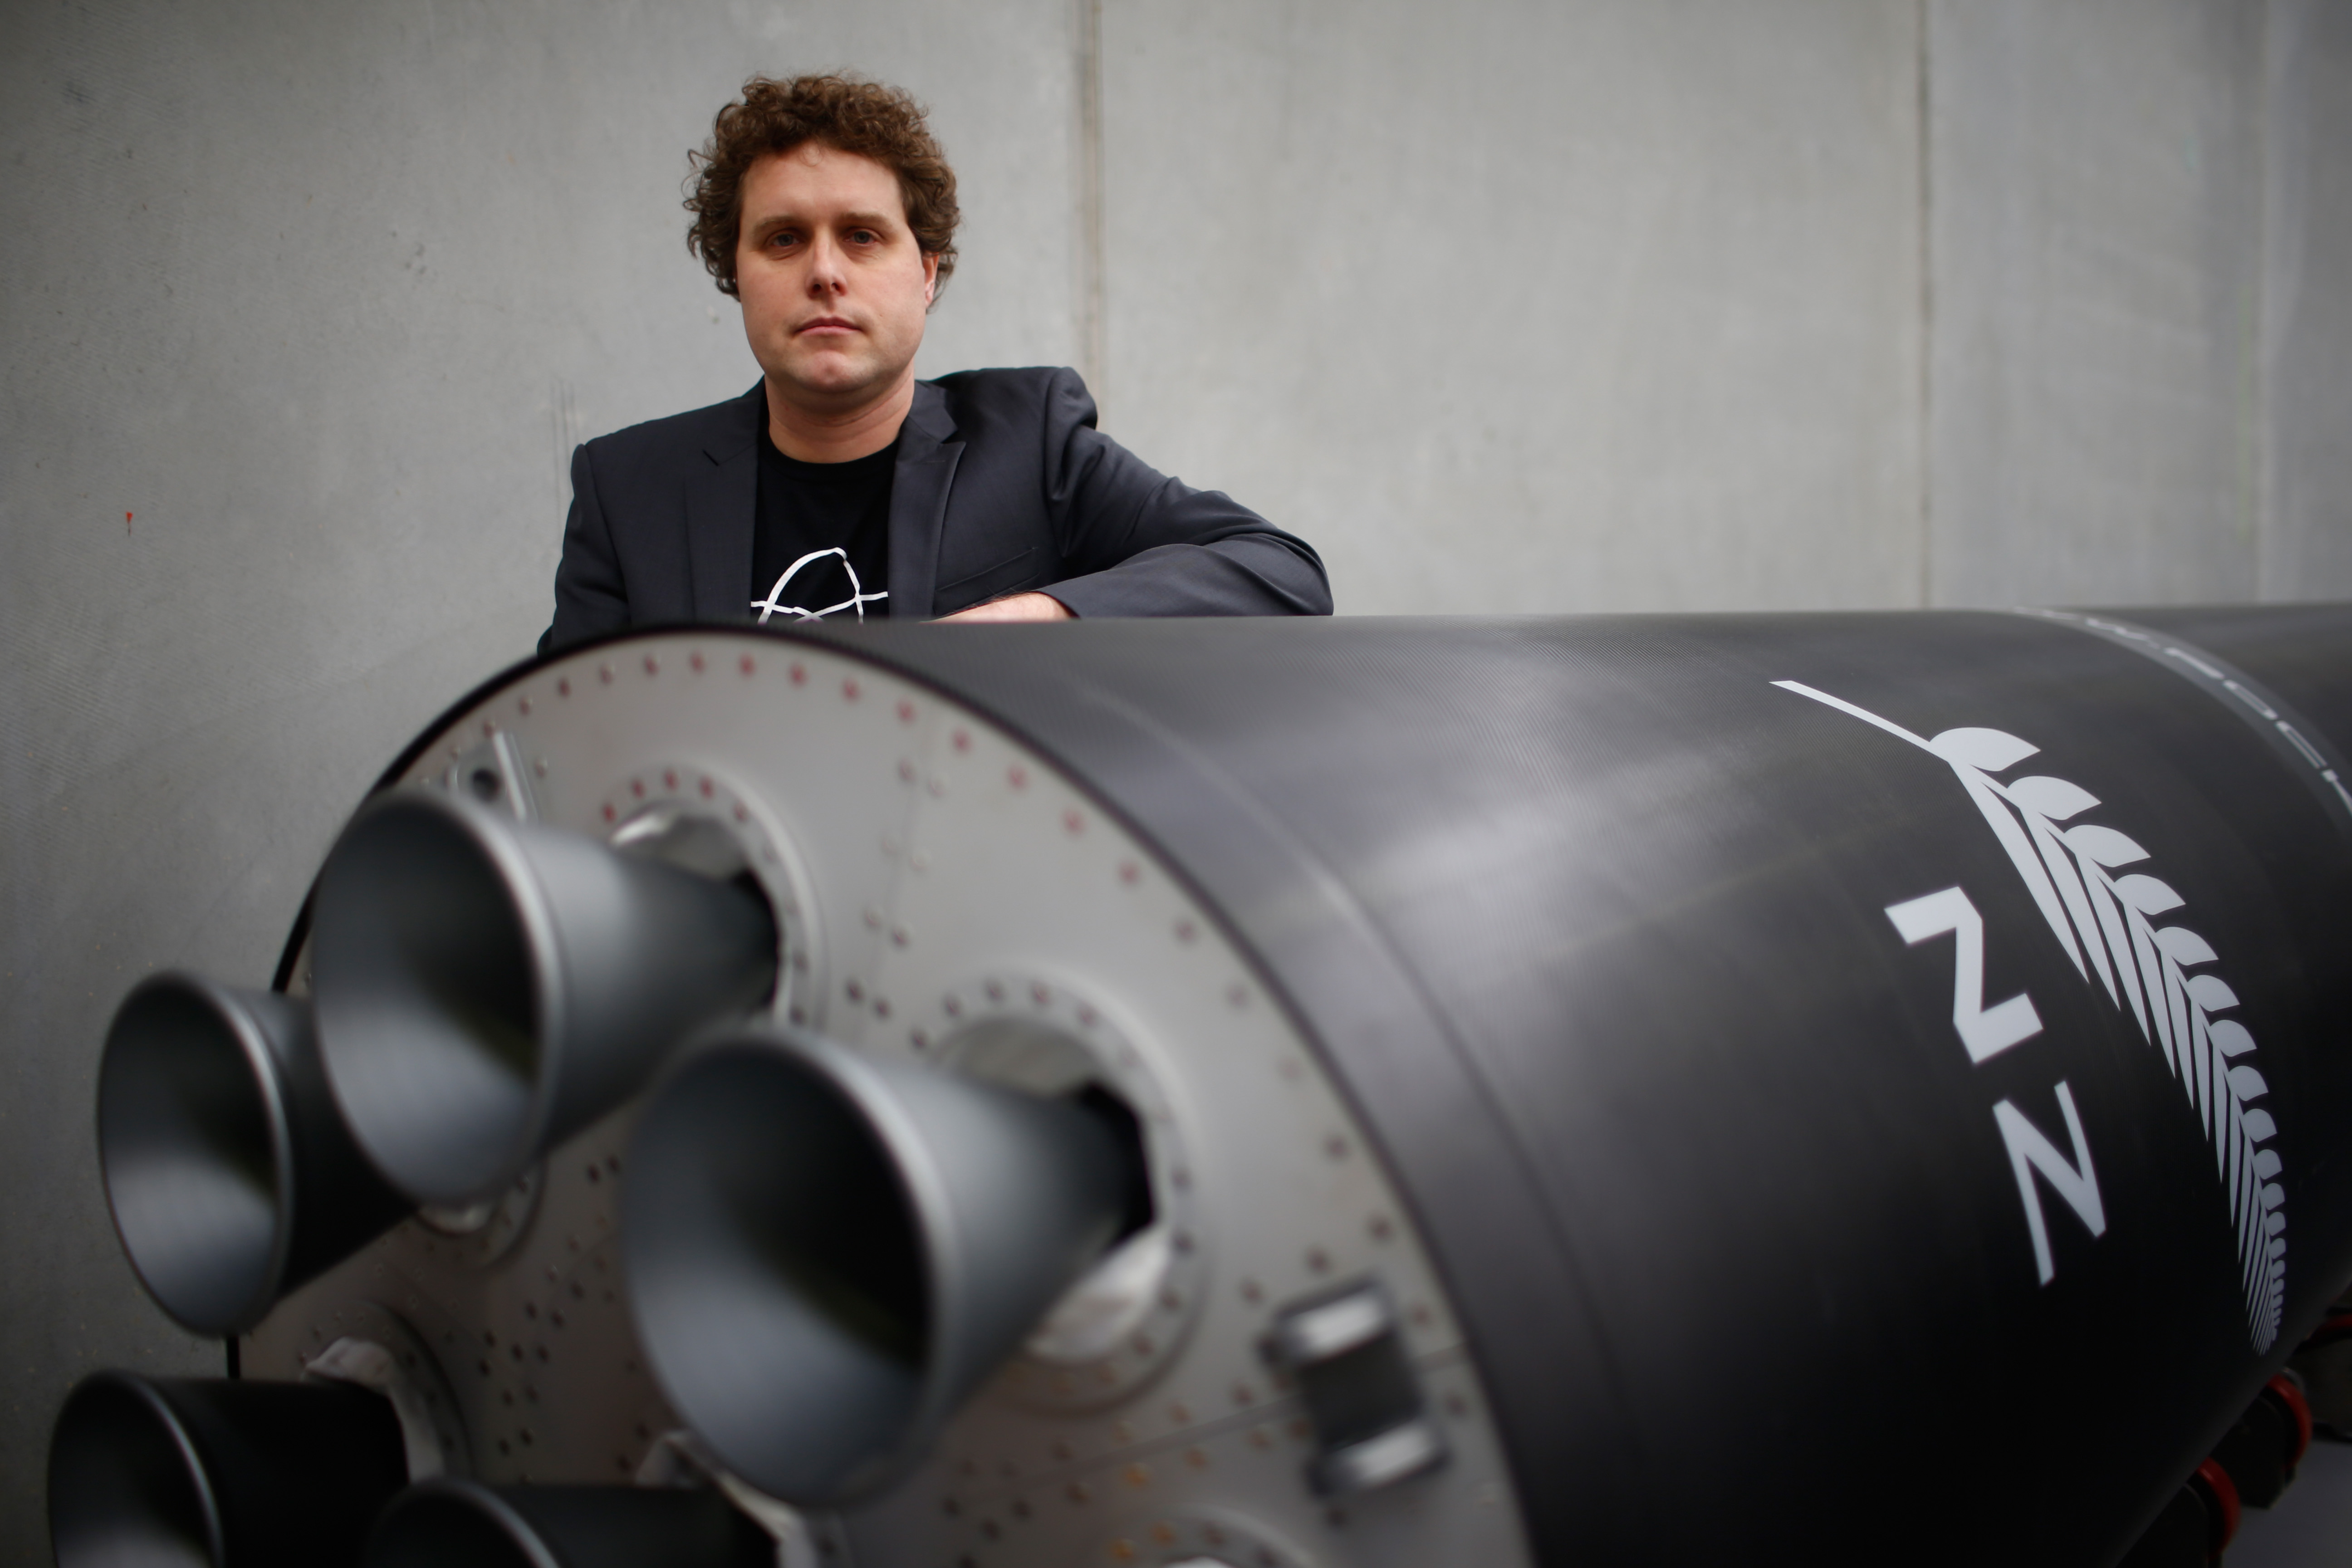 World's First Battery-Powered Rocket Engine To Make Space More Accessible